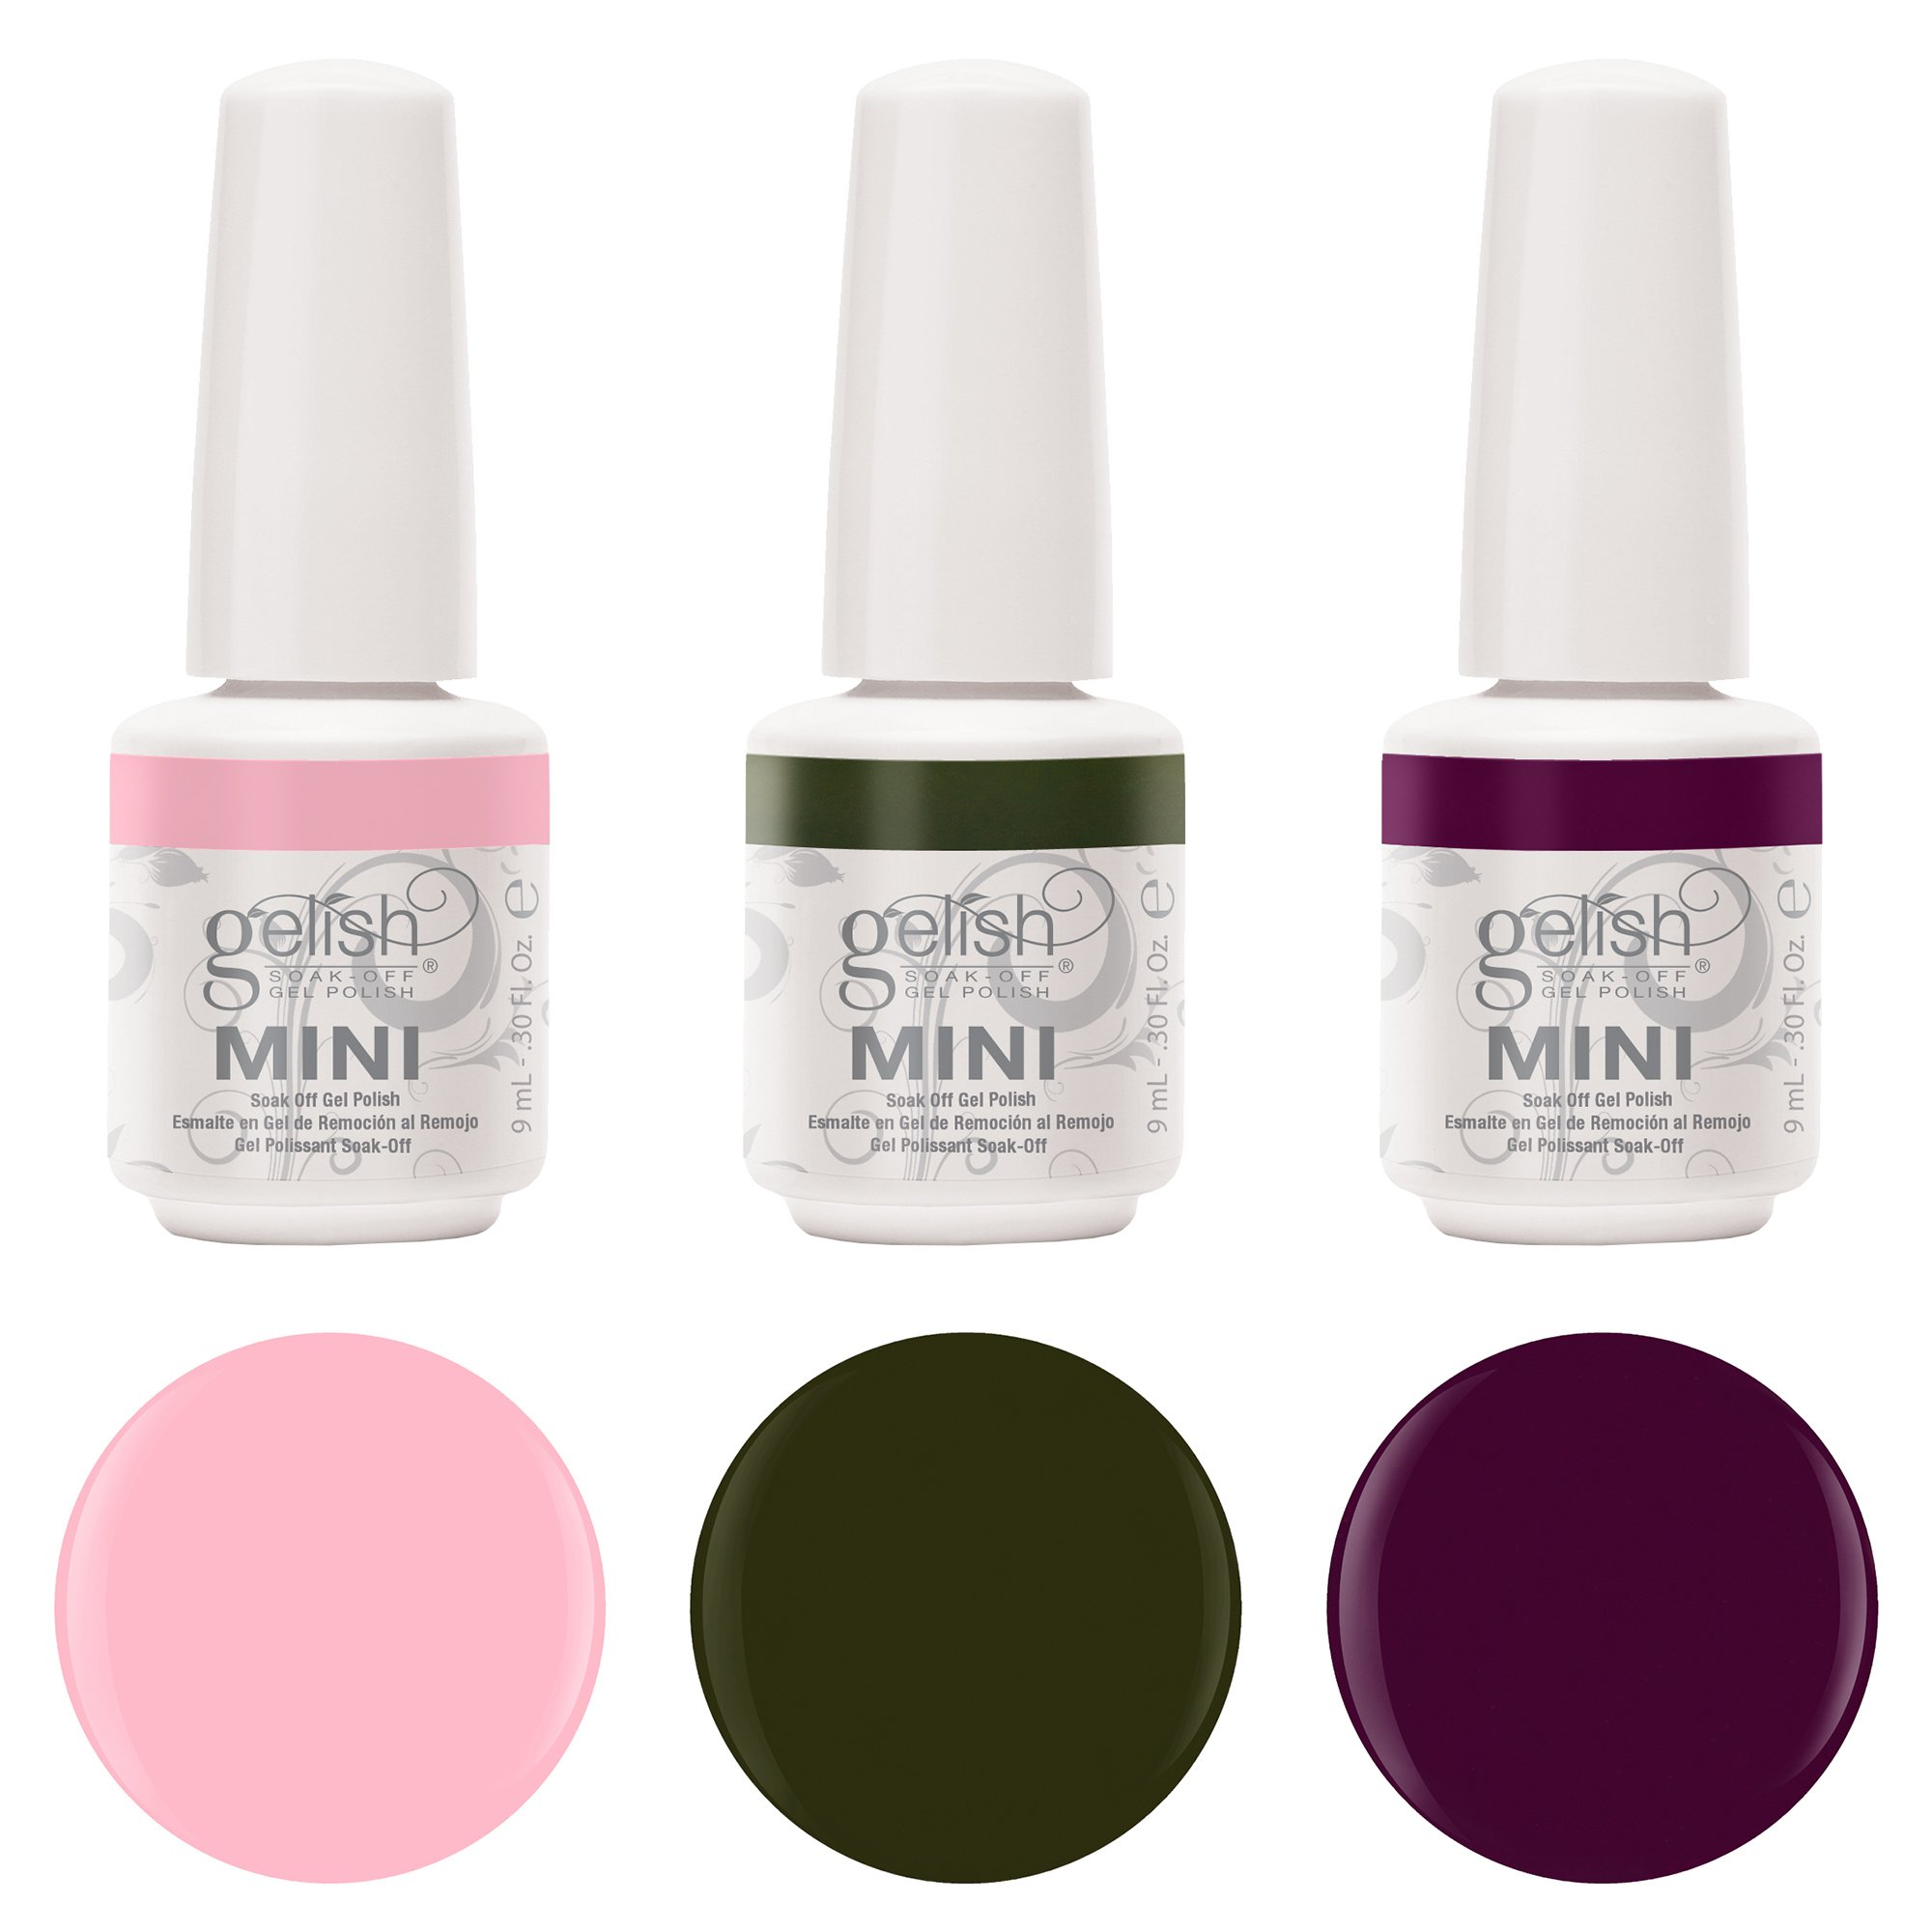 Gelish Harmony Complete Starter Led Gel Nail Polish Kit with 5 Additional Colors by Gelish (Image #6)